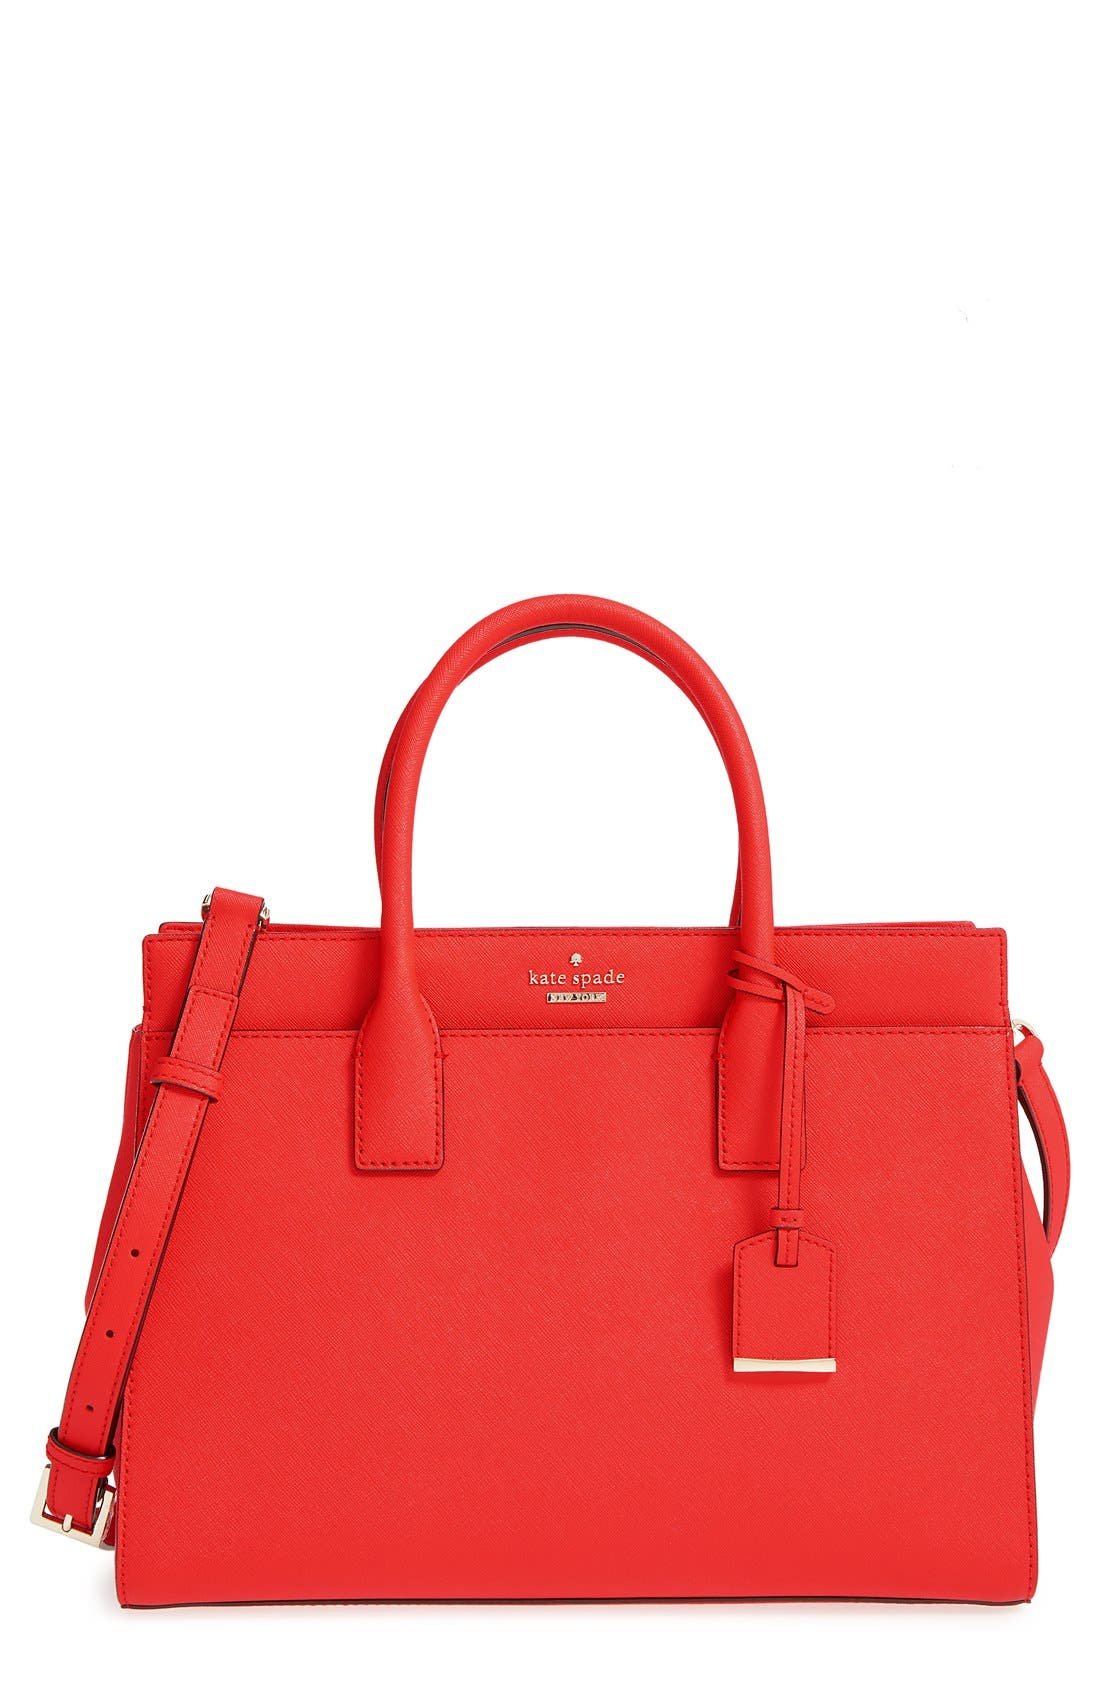 cameron street - candace leather satchel,                             Main thumbnail 10, color,